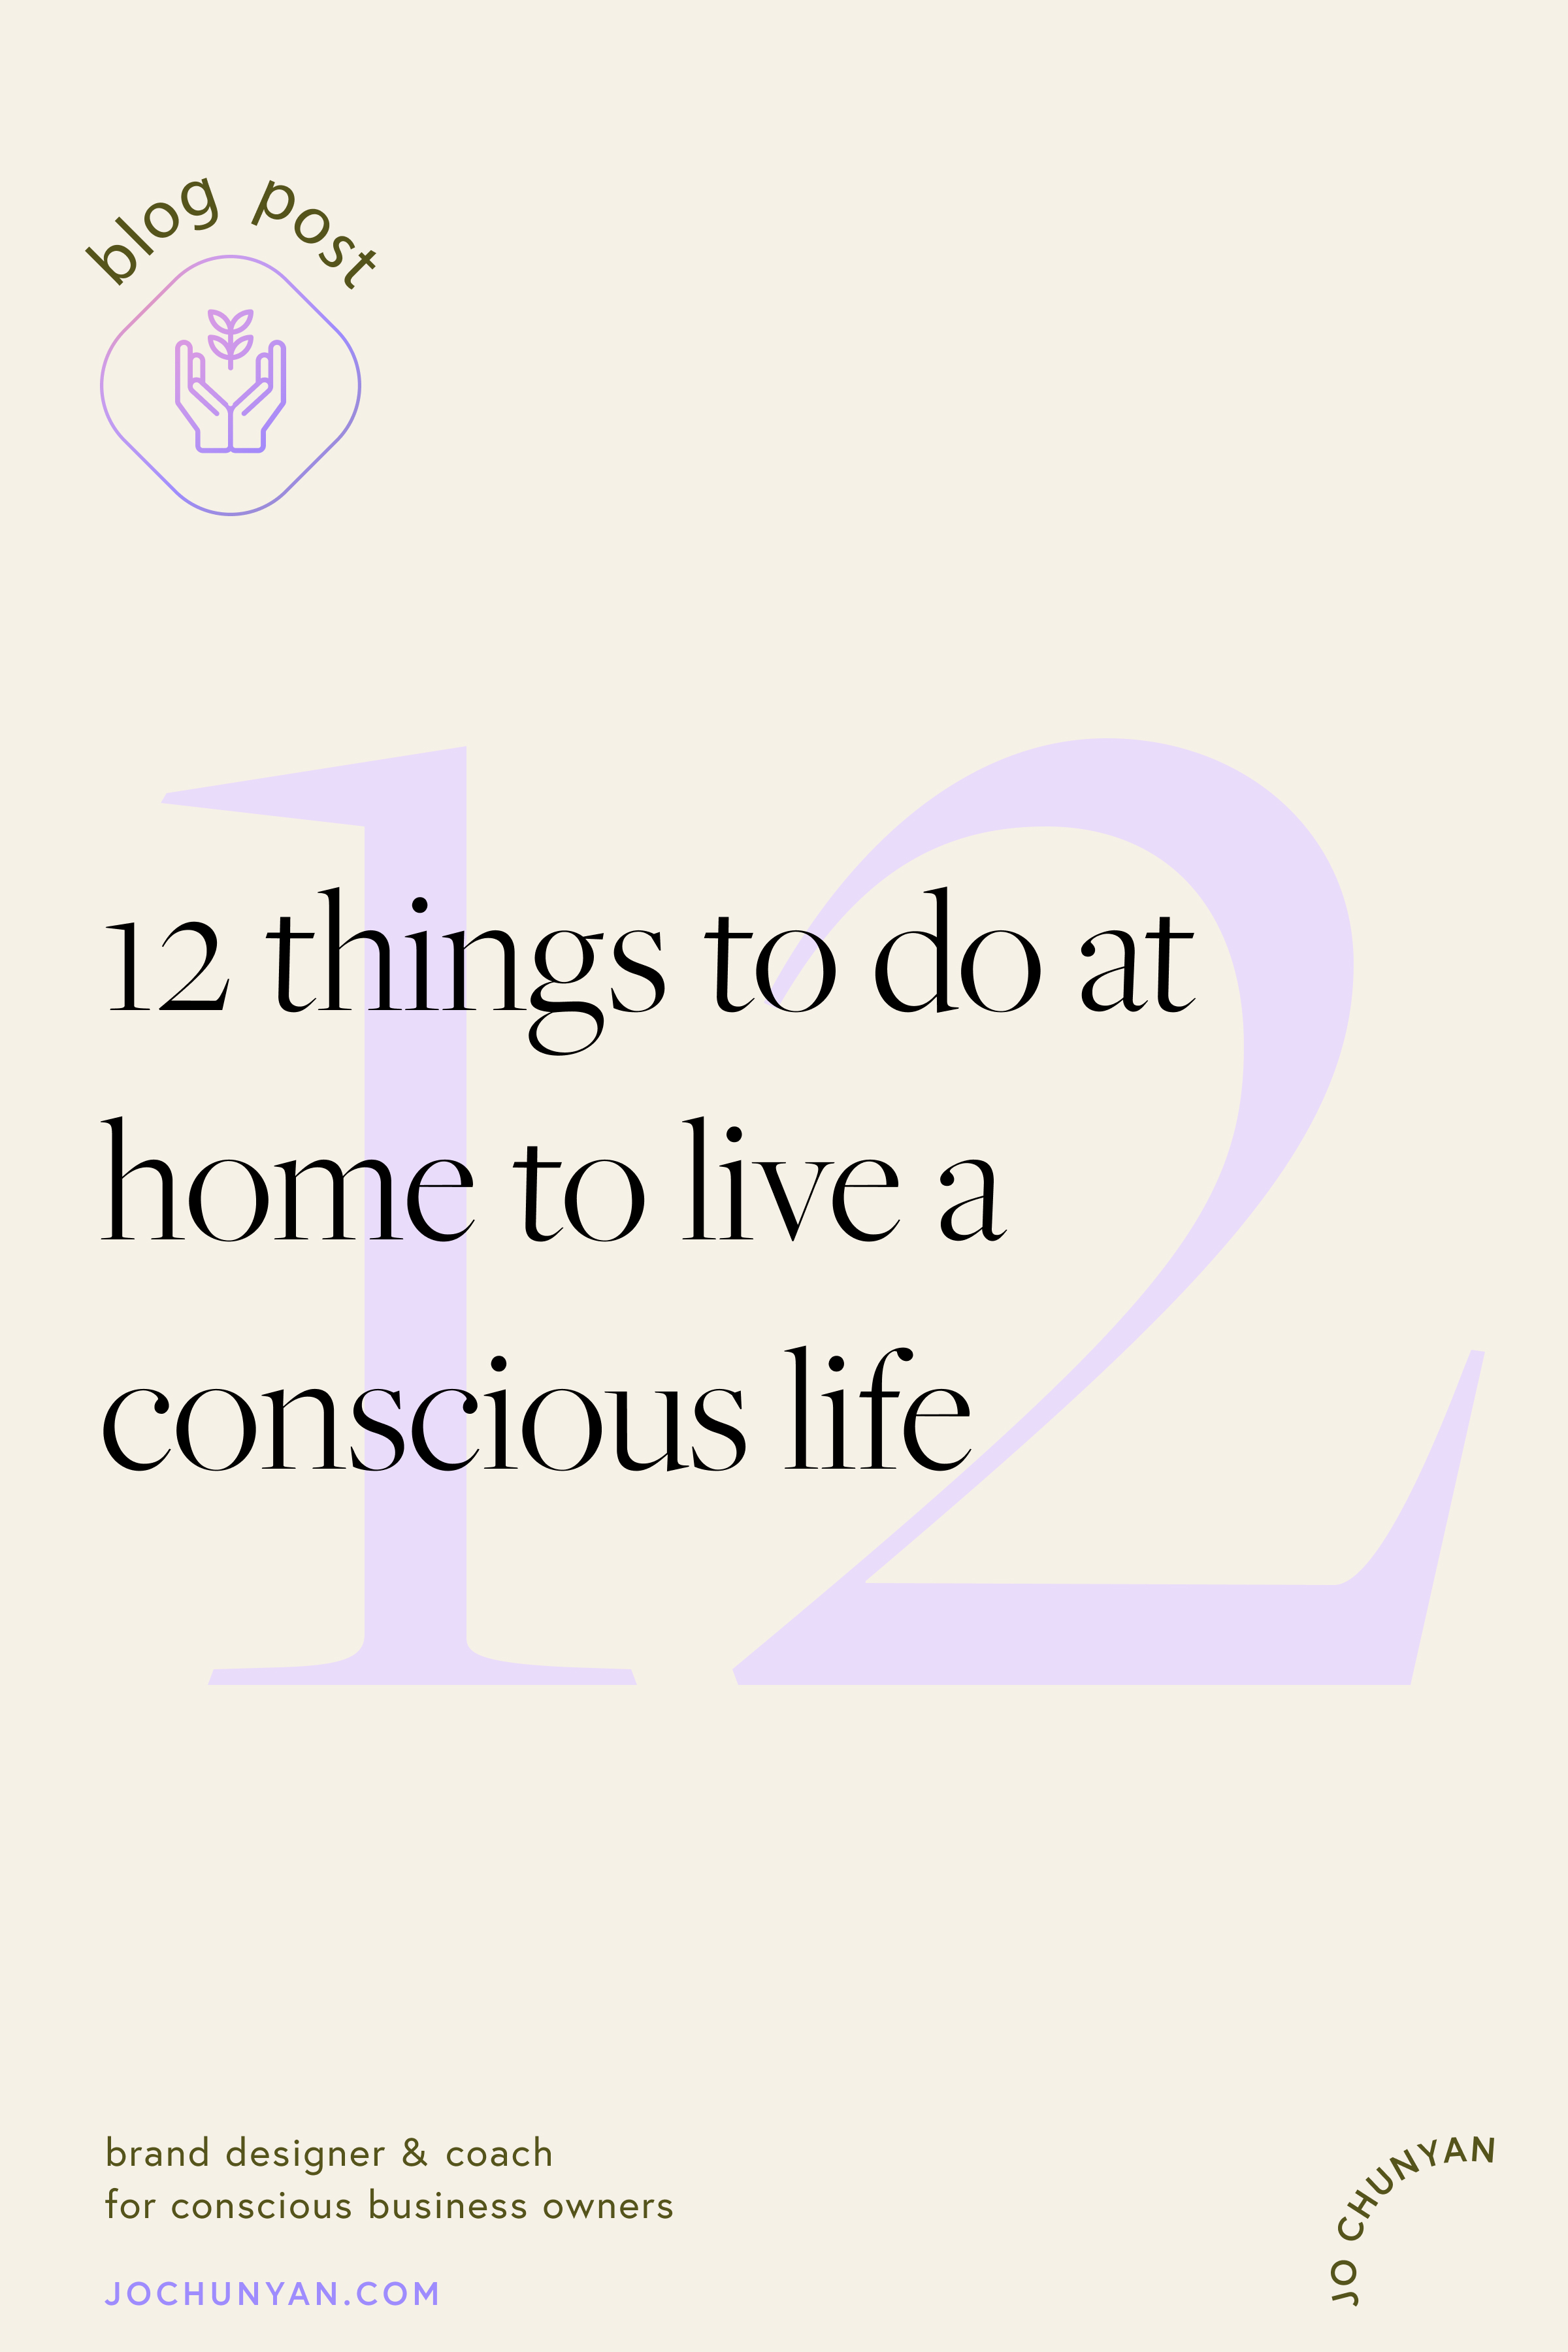 12 things to do at home to live a conscious life